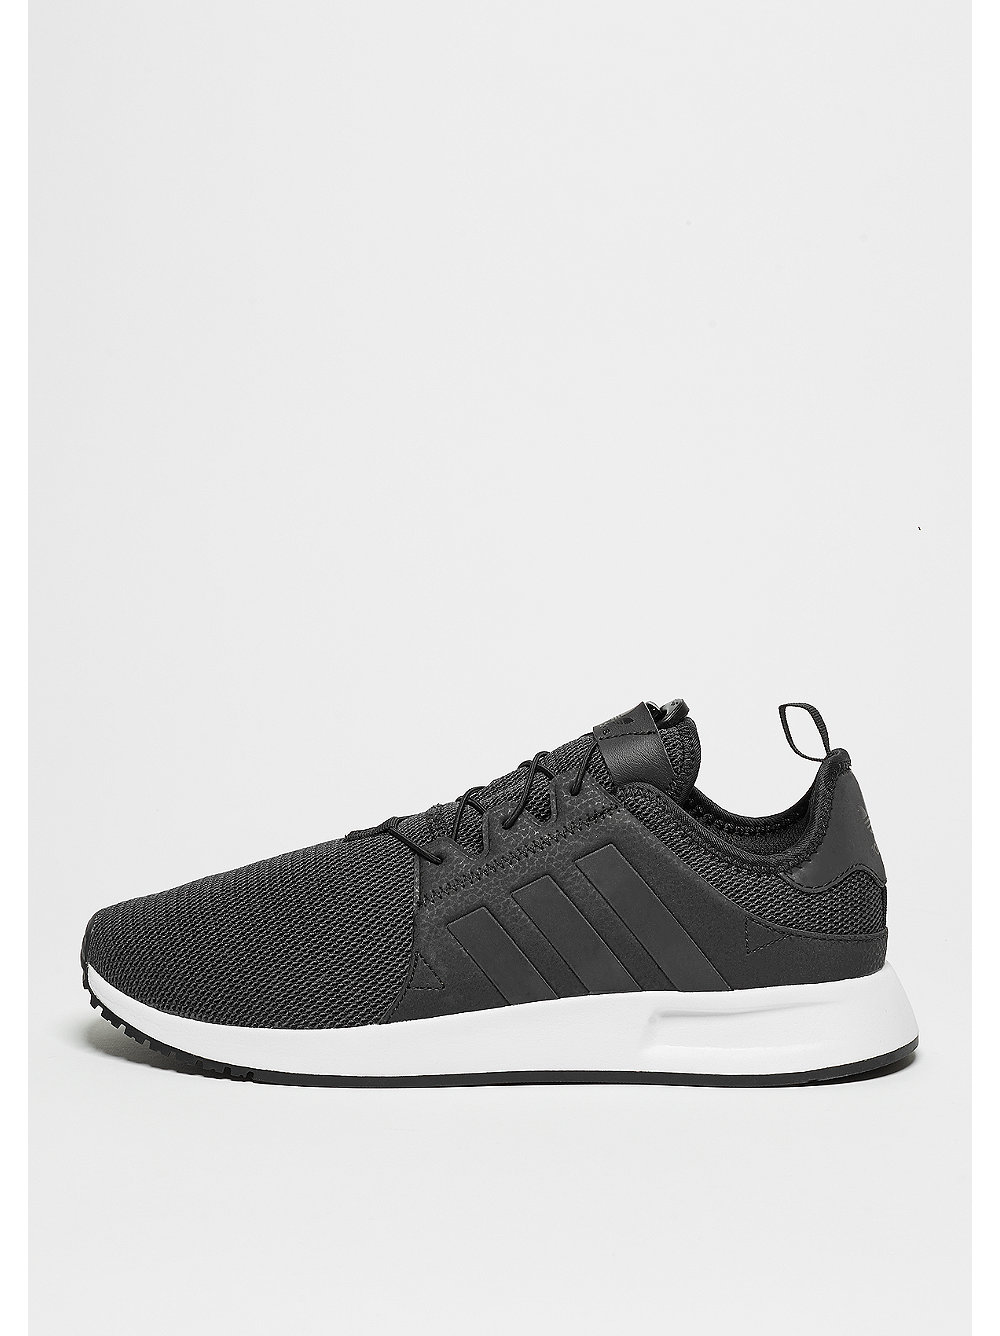 adidas X PLR core black